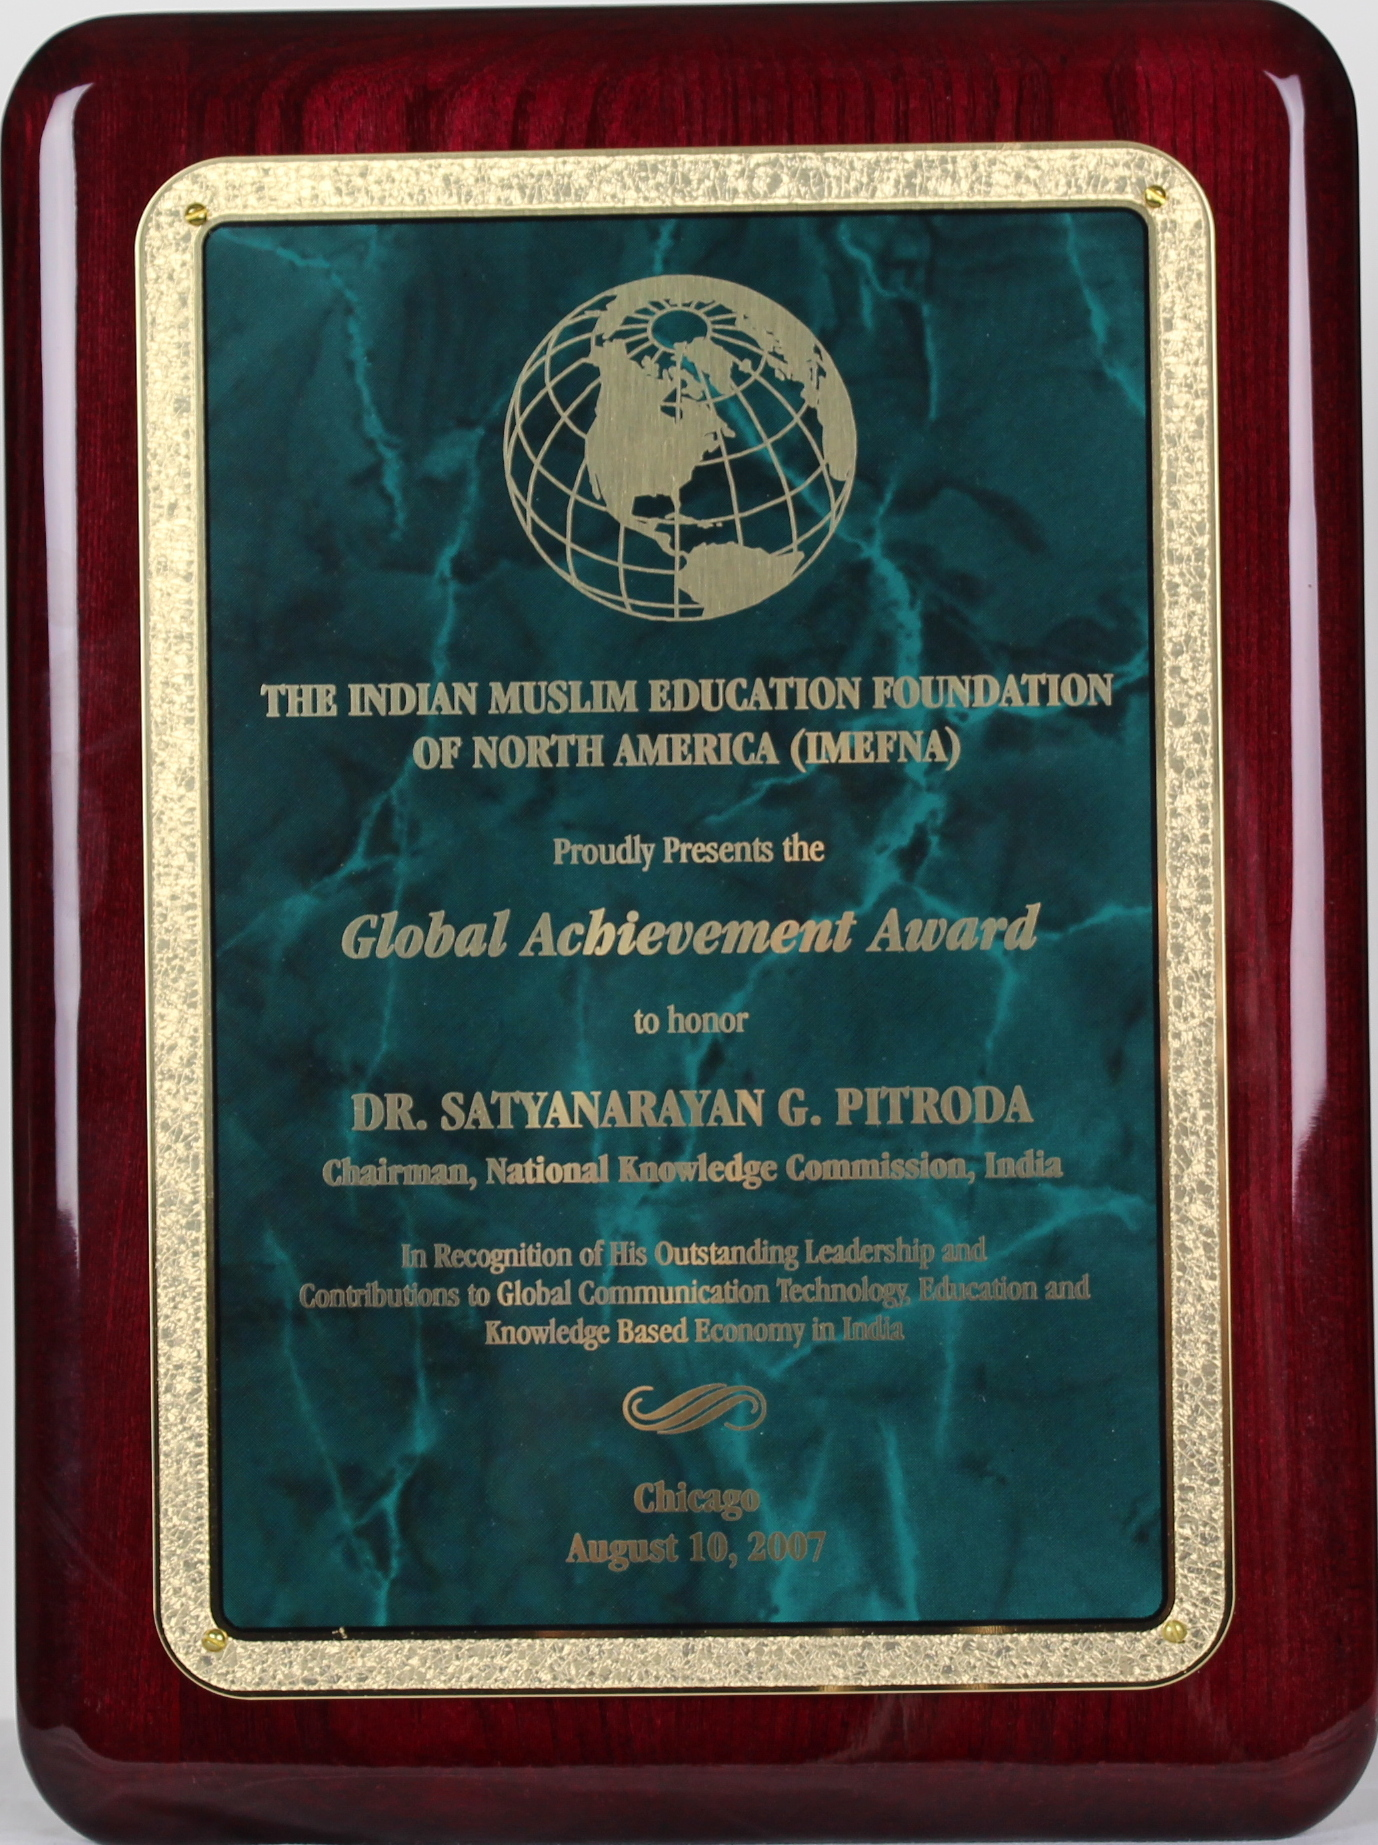 Global Achievement Award, The Indian Muslim Education Foundation of North America, 2007